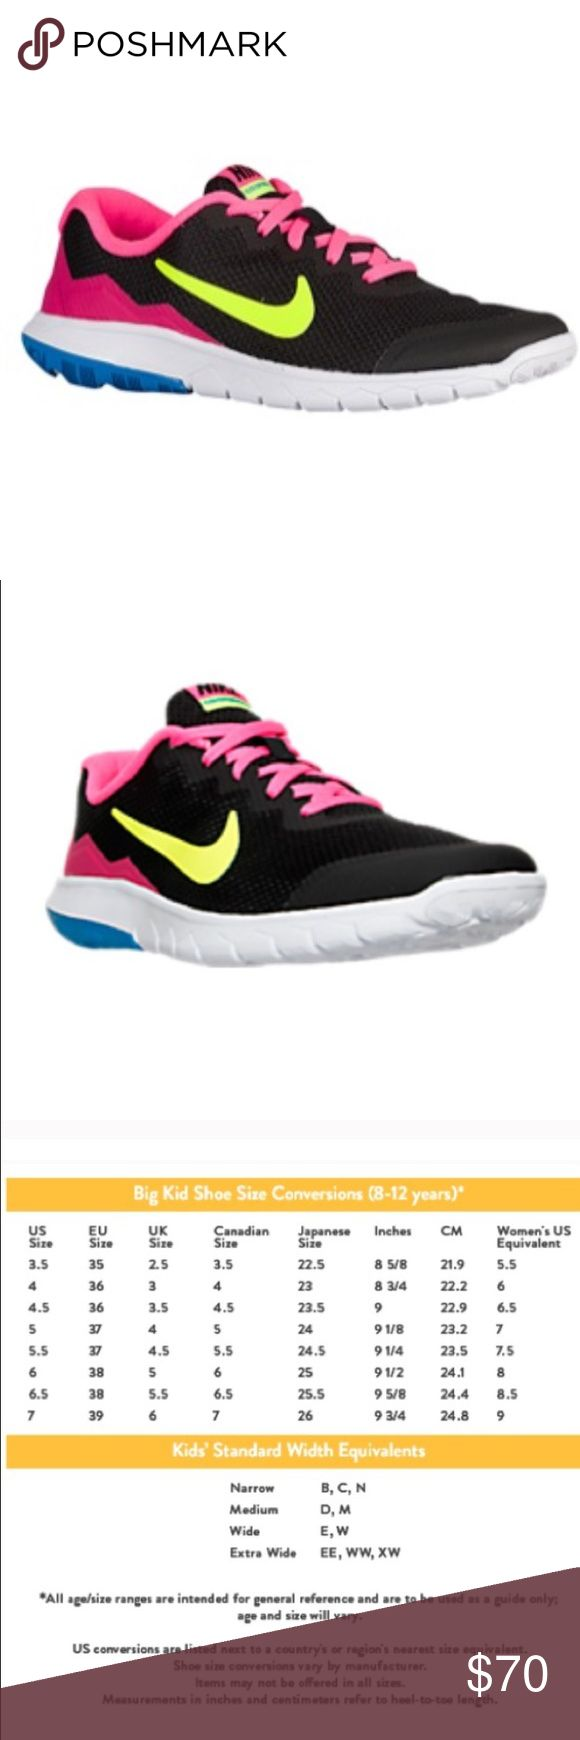 1000 ideas about nike shoes size chart on